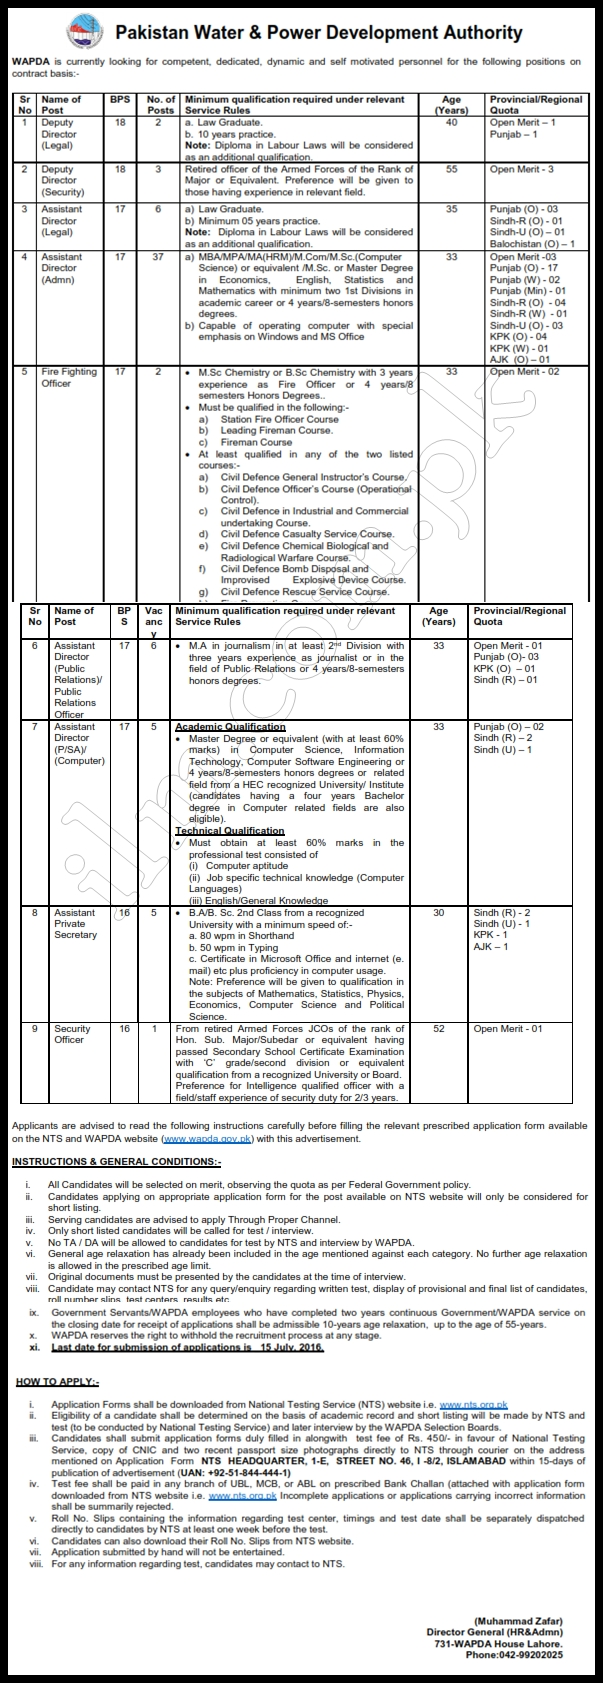 assistant director jobs nts application form last date wapda assistant director jobs 2016 nts application form last date